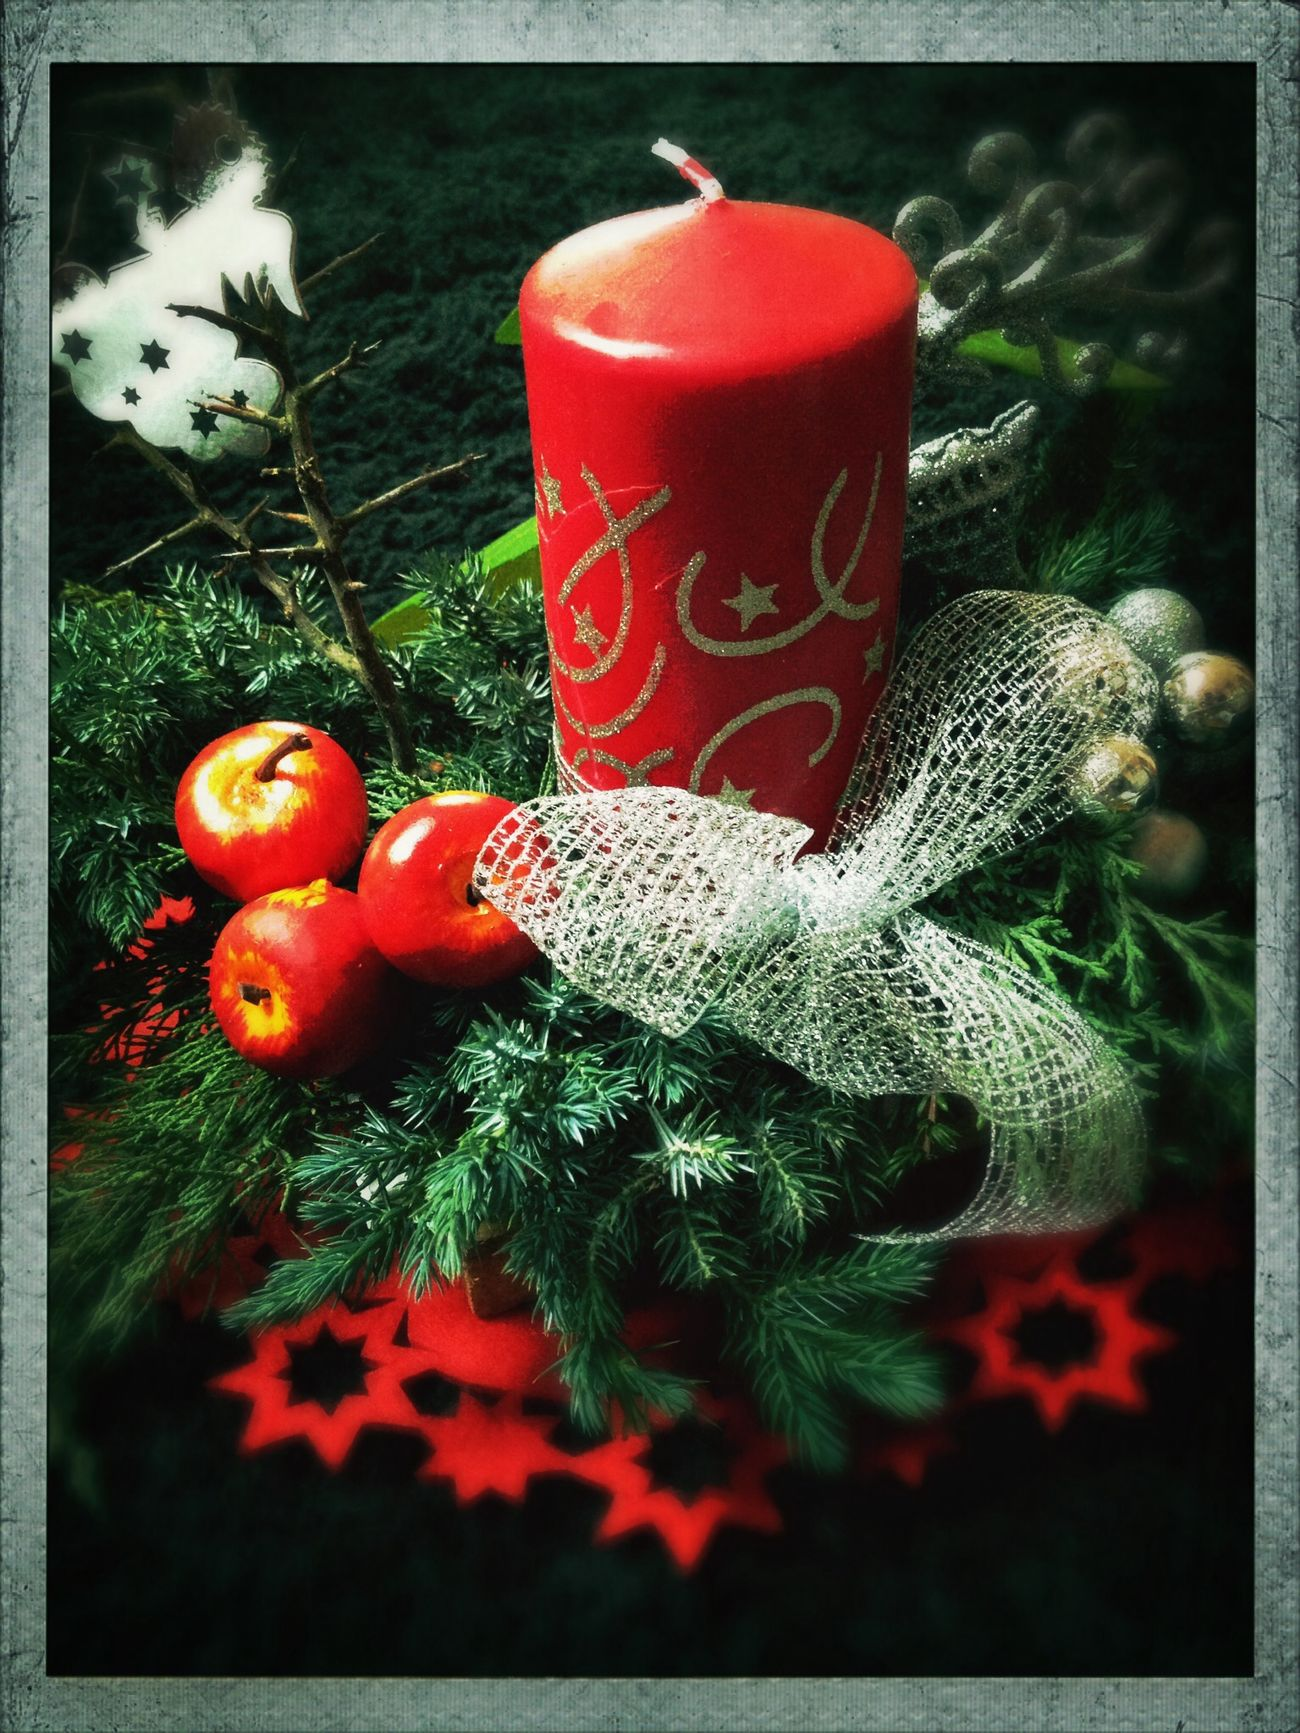 1. Advent EyeEm Best Shots - My World My Christmas Decoration a beautiful 1st Advent to my friends! ❄️?